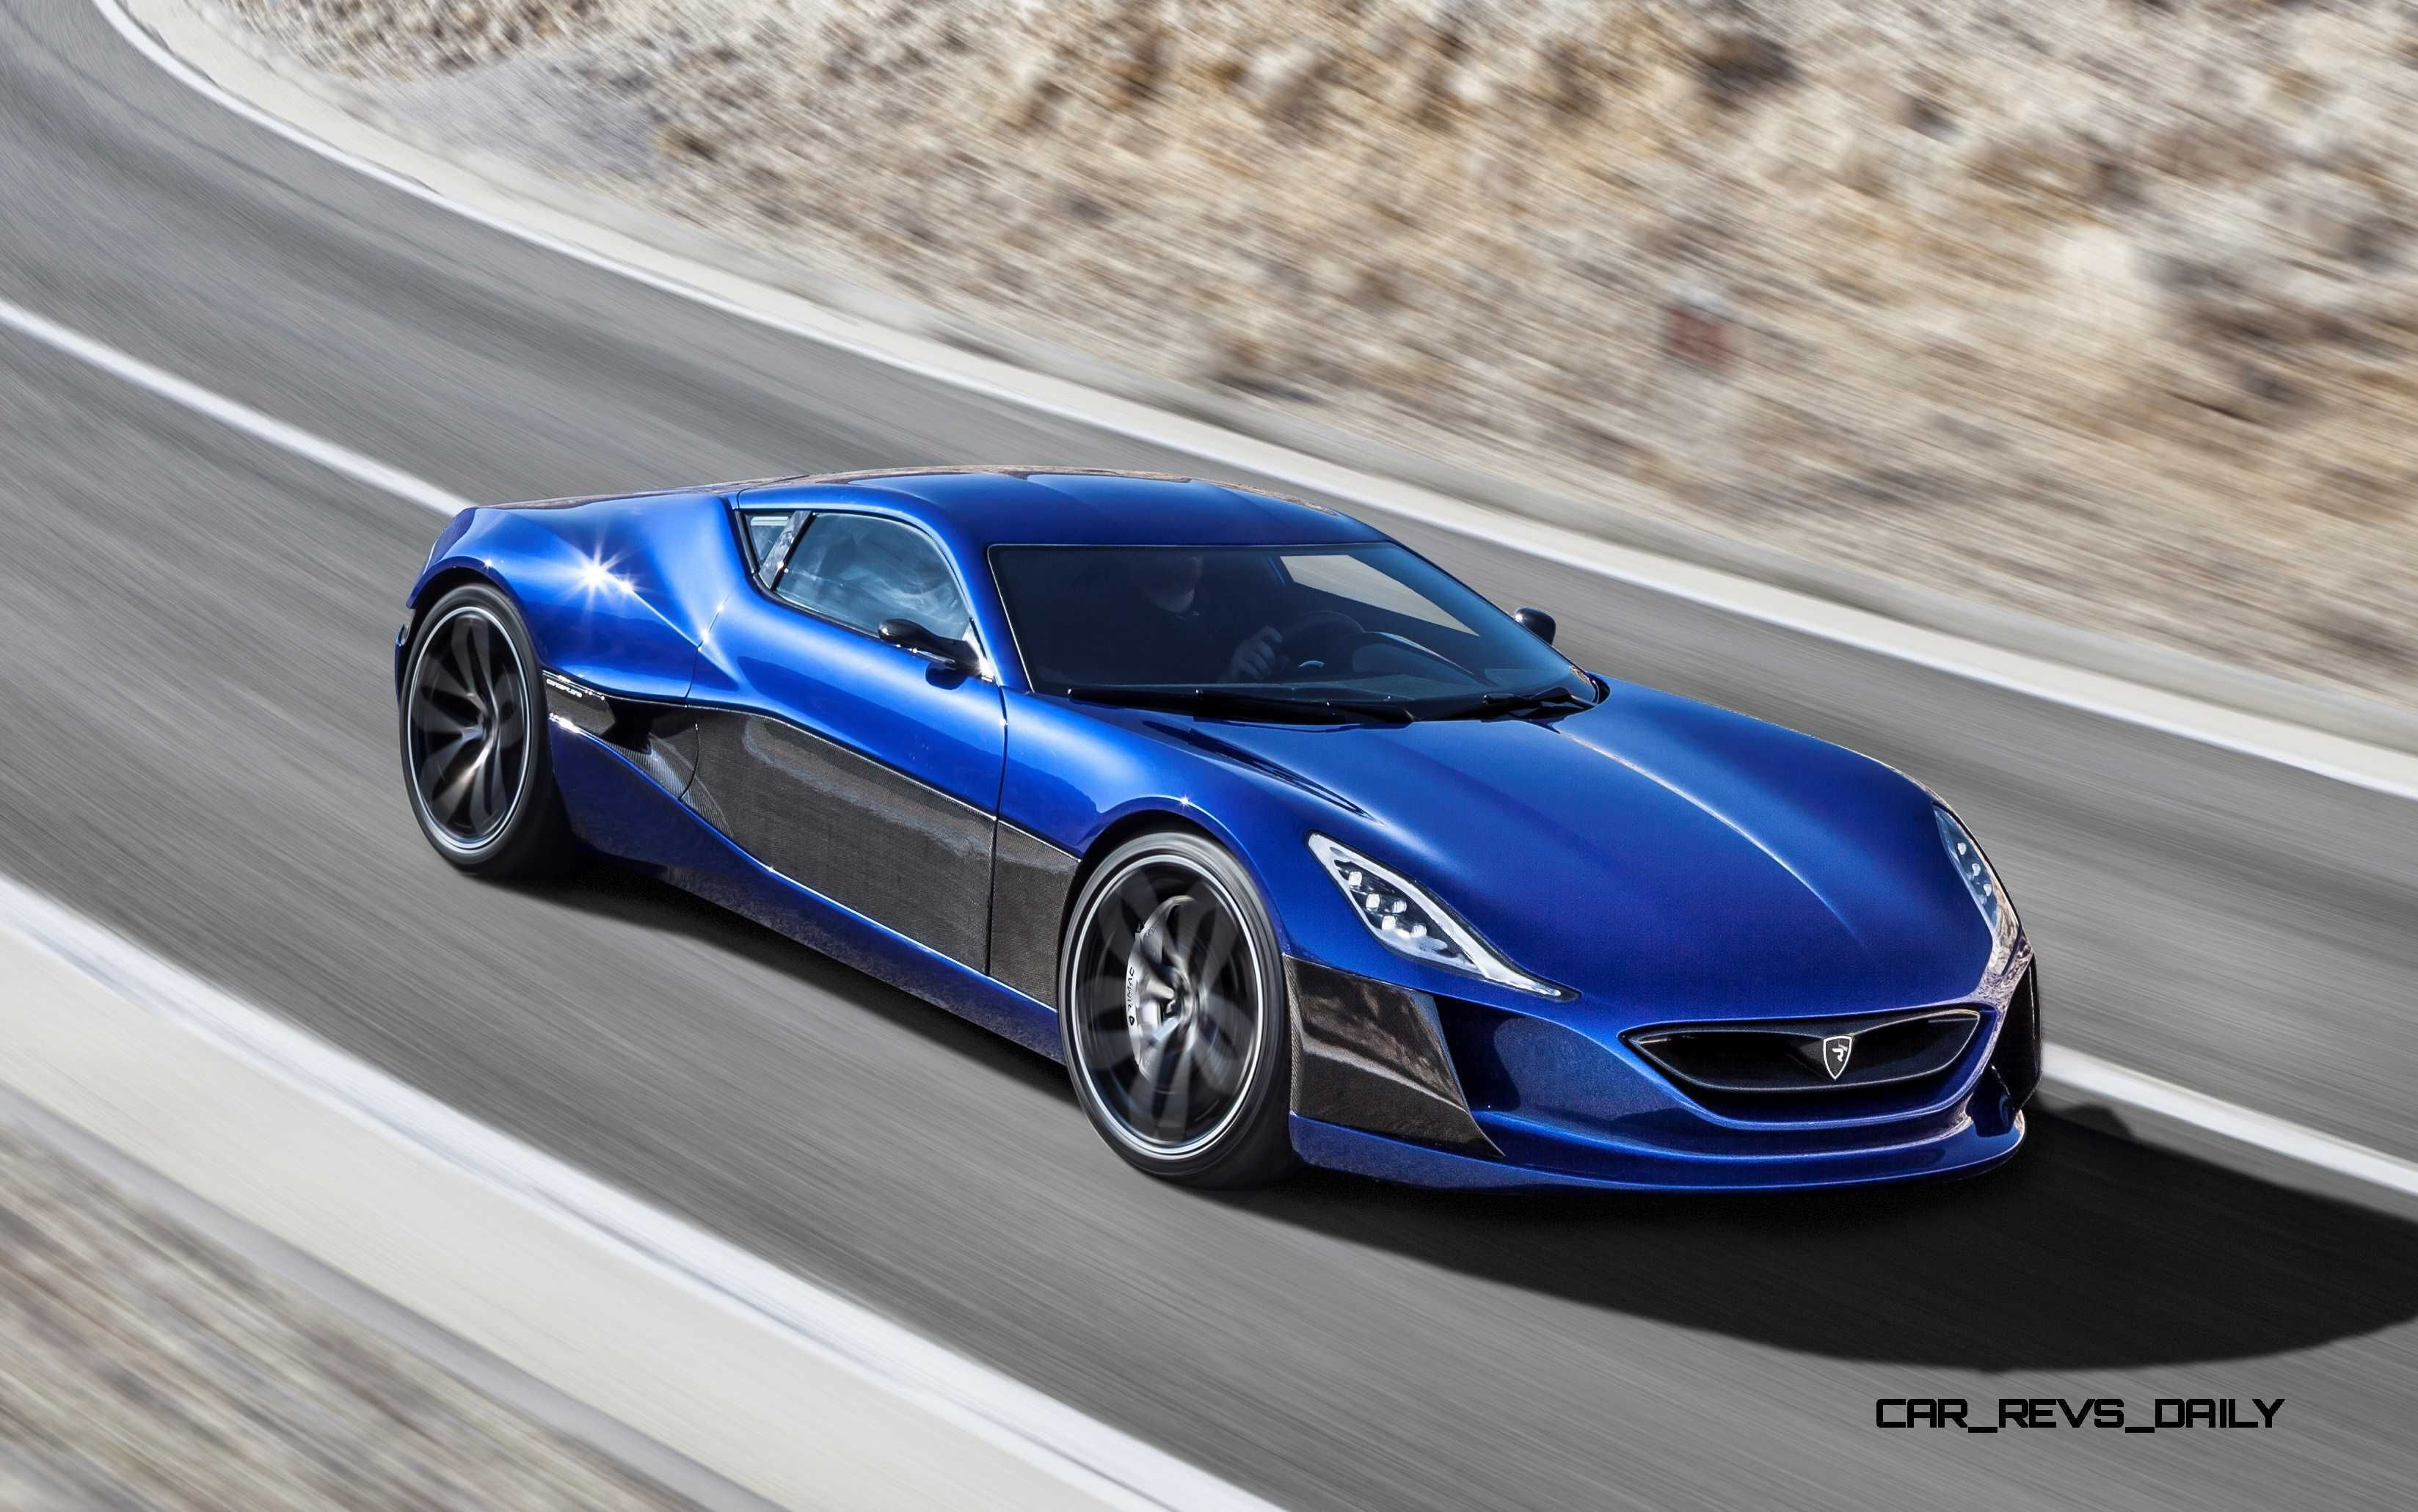 1088HP RIMAC Concept_One eHypercar Nearing Production